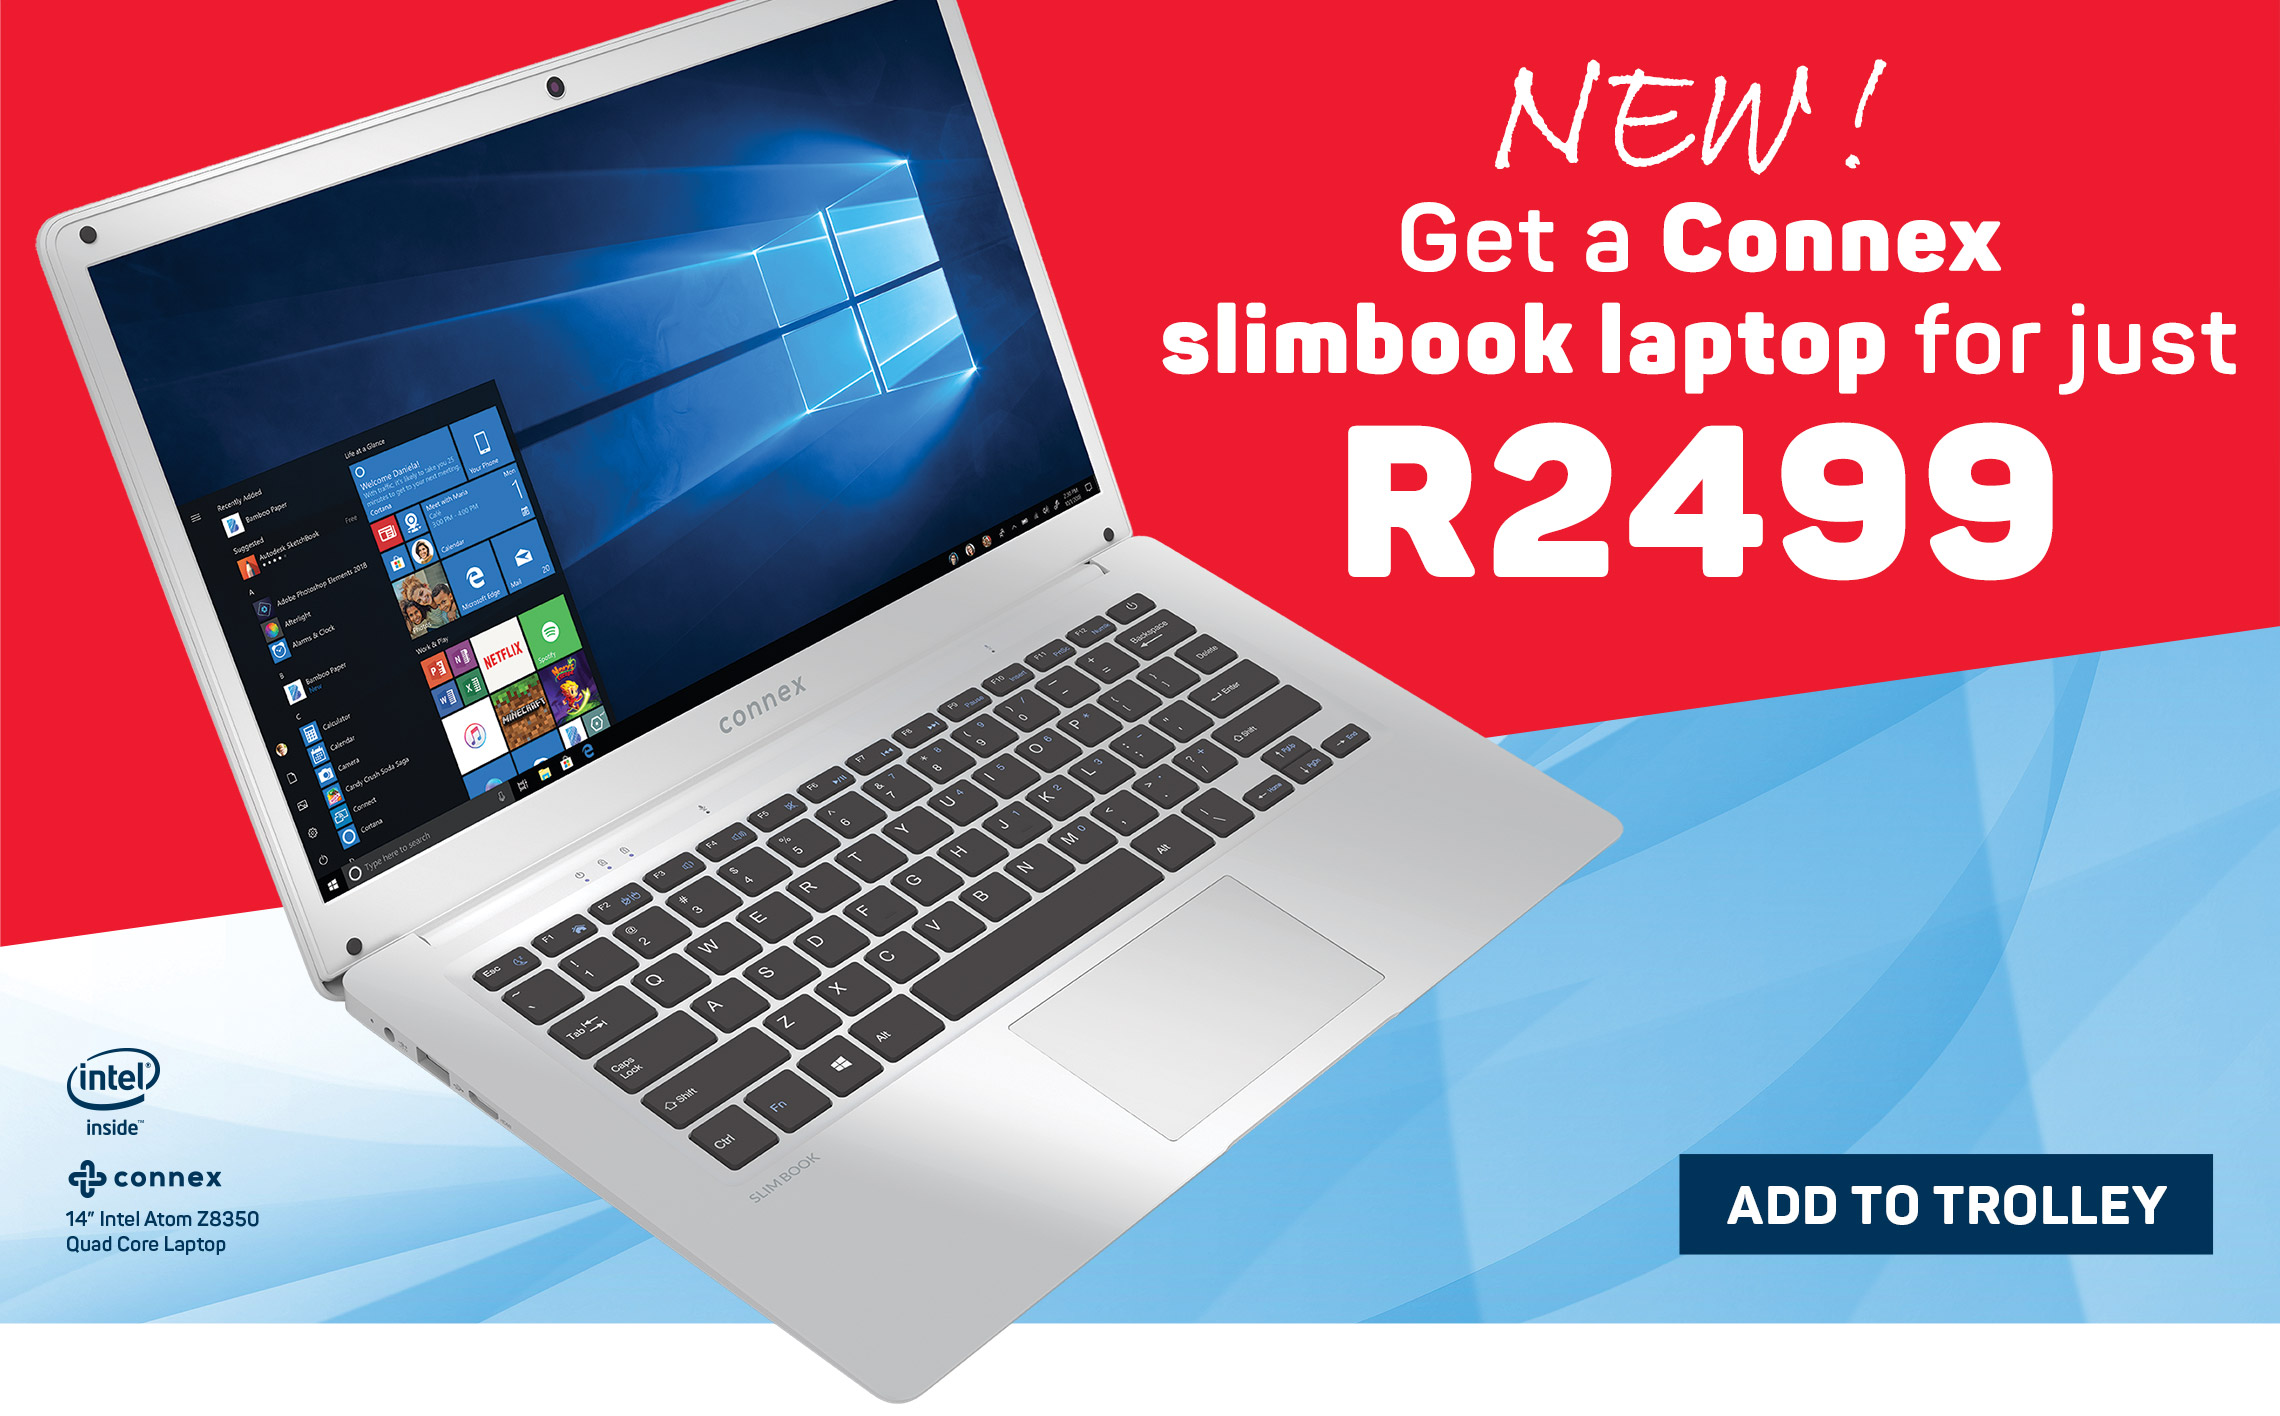 New! Get a Connex slimbook laptop forjust R2499. Add to trolley